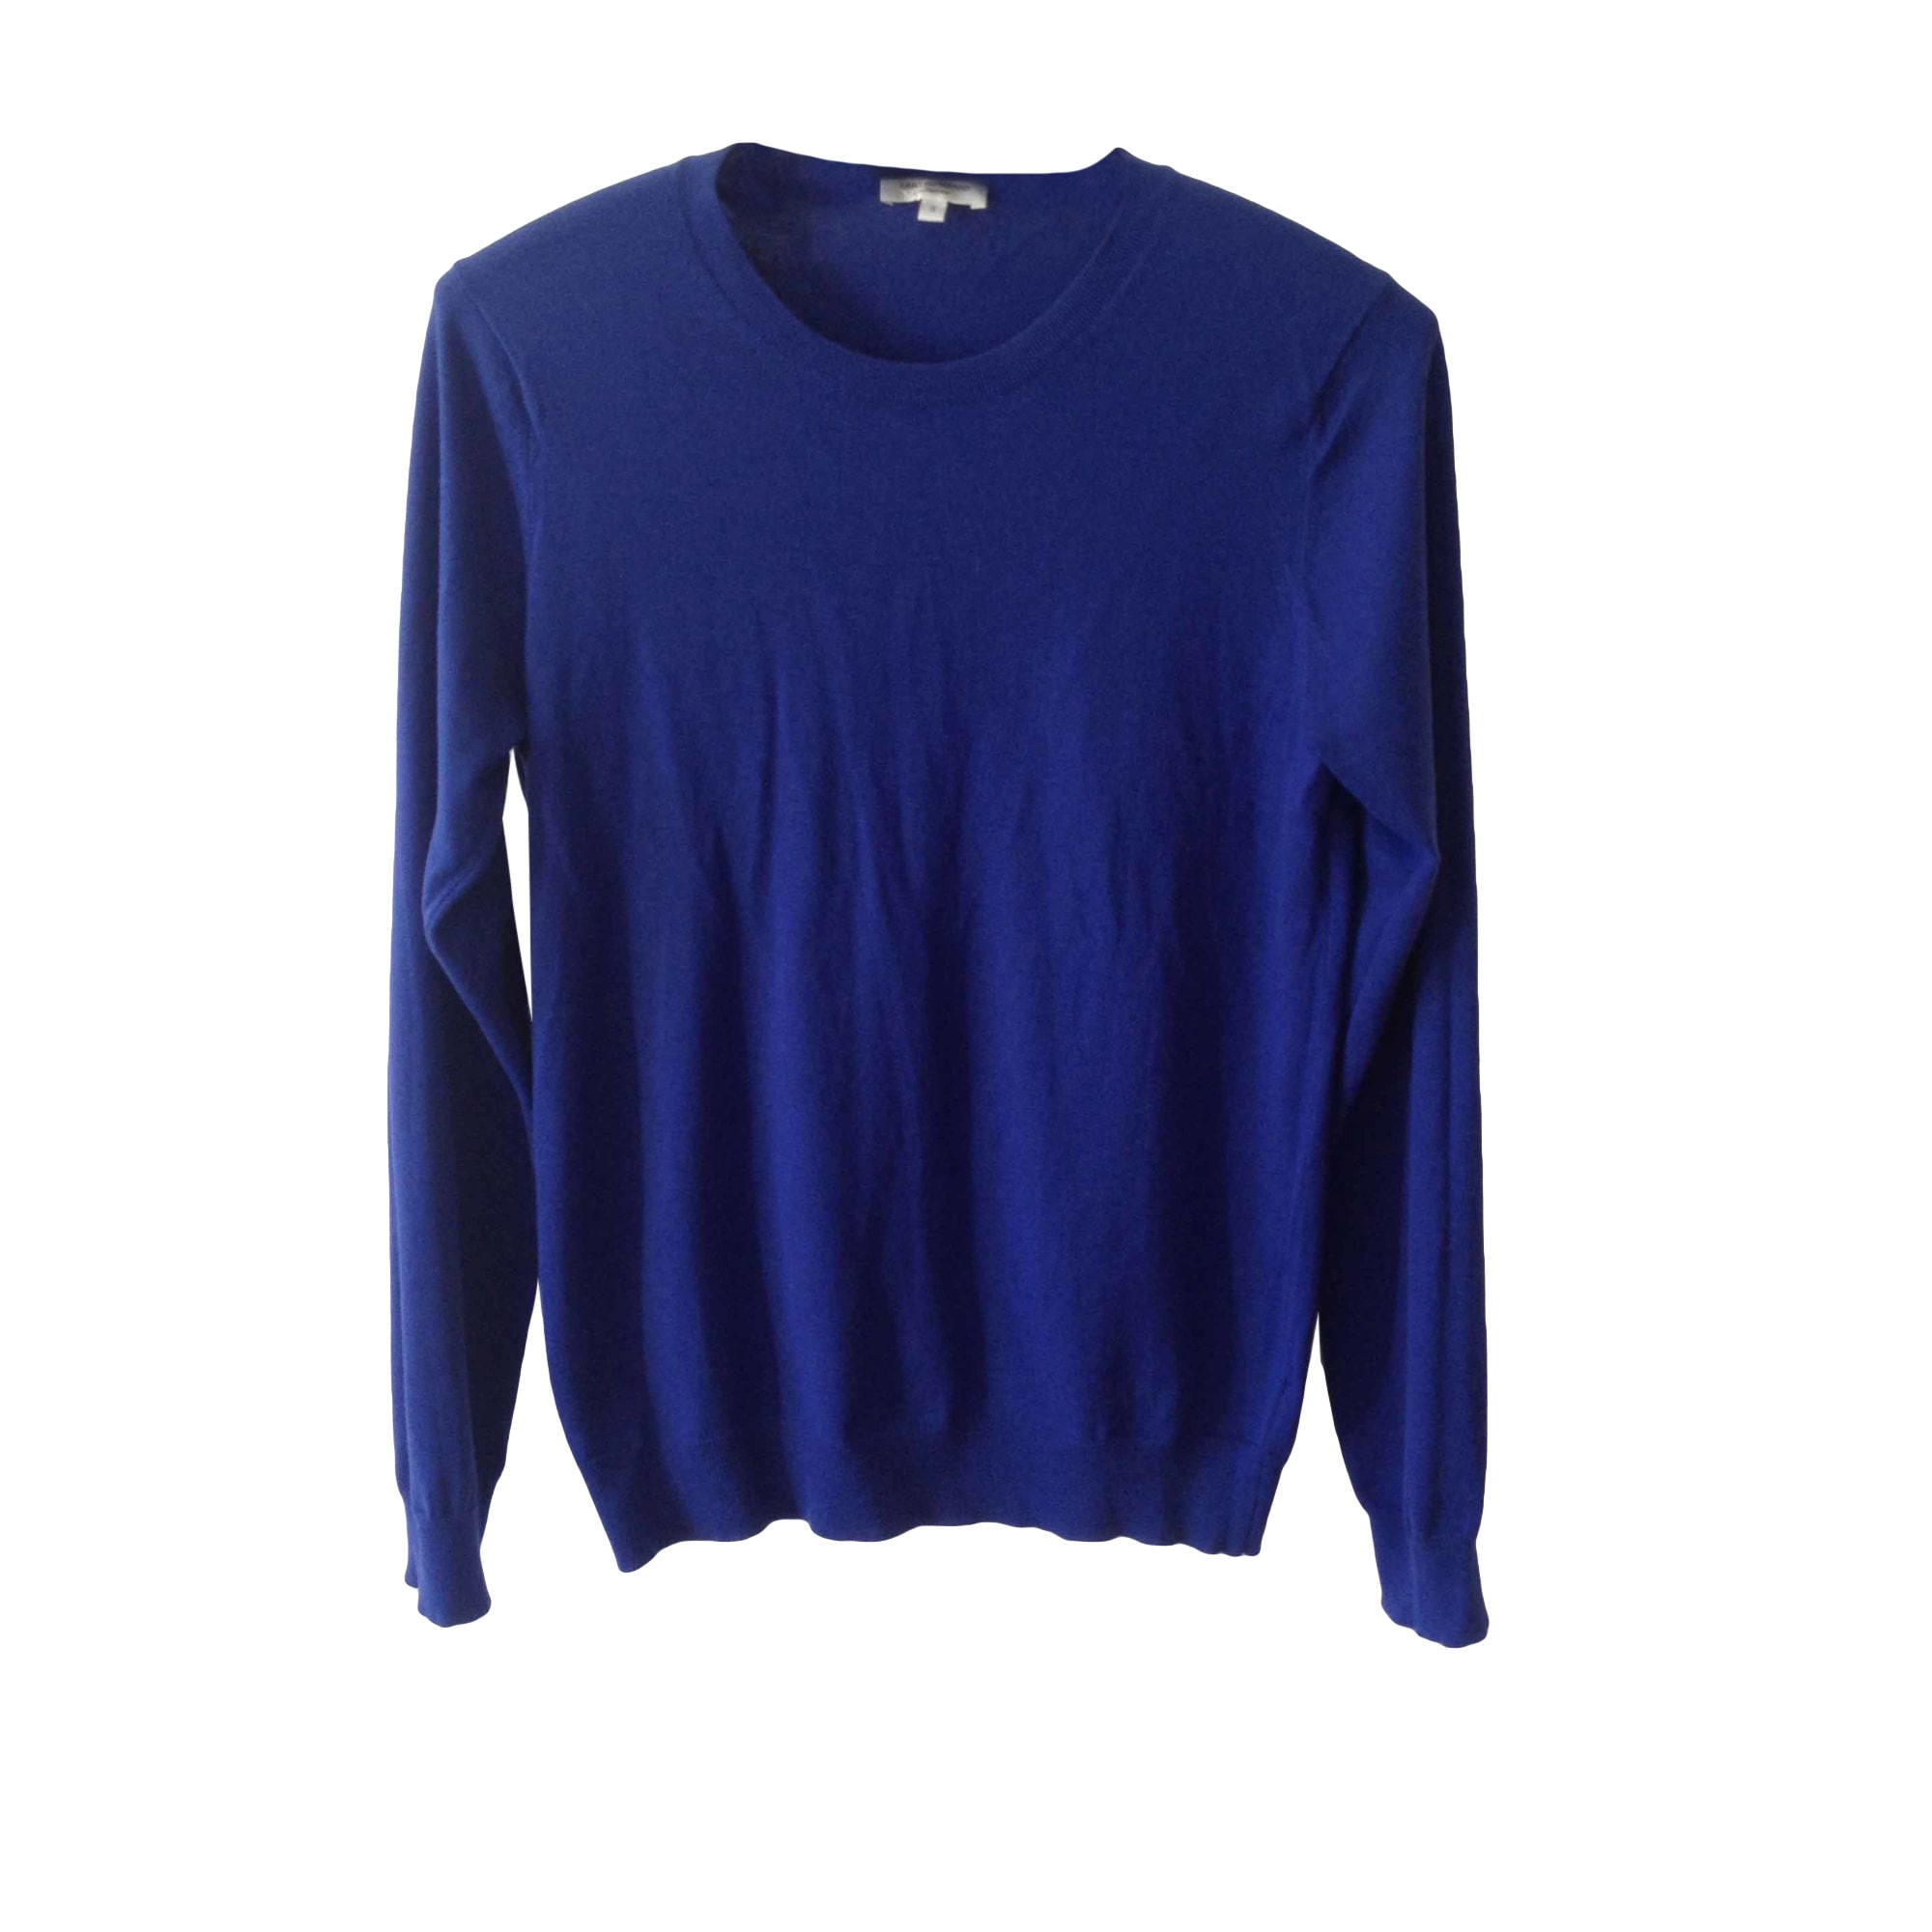 Sweater ERIC BOMPARD Blue, navy, turquoise